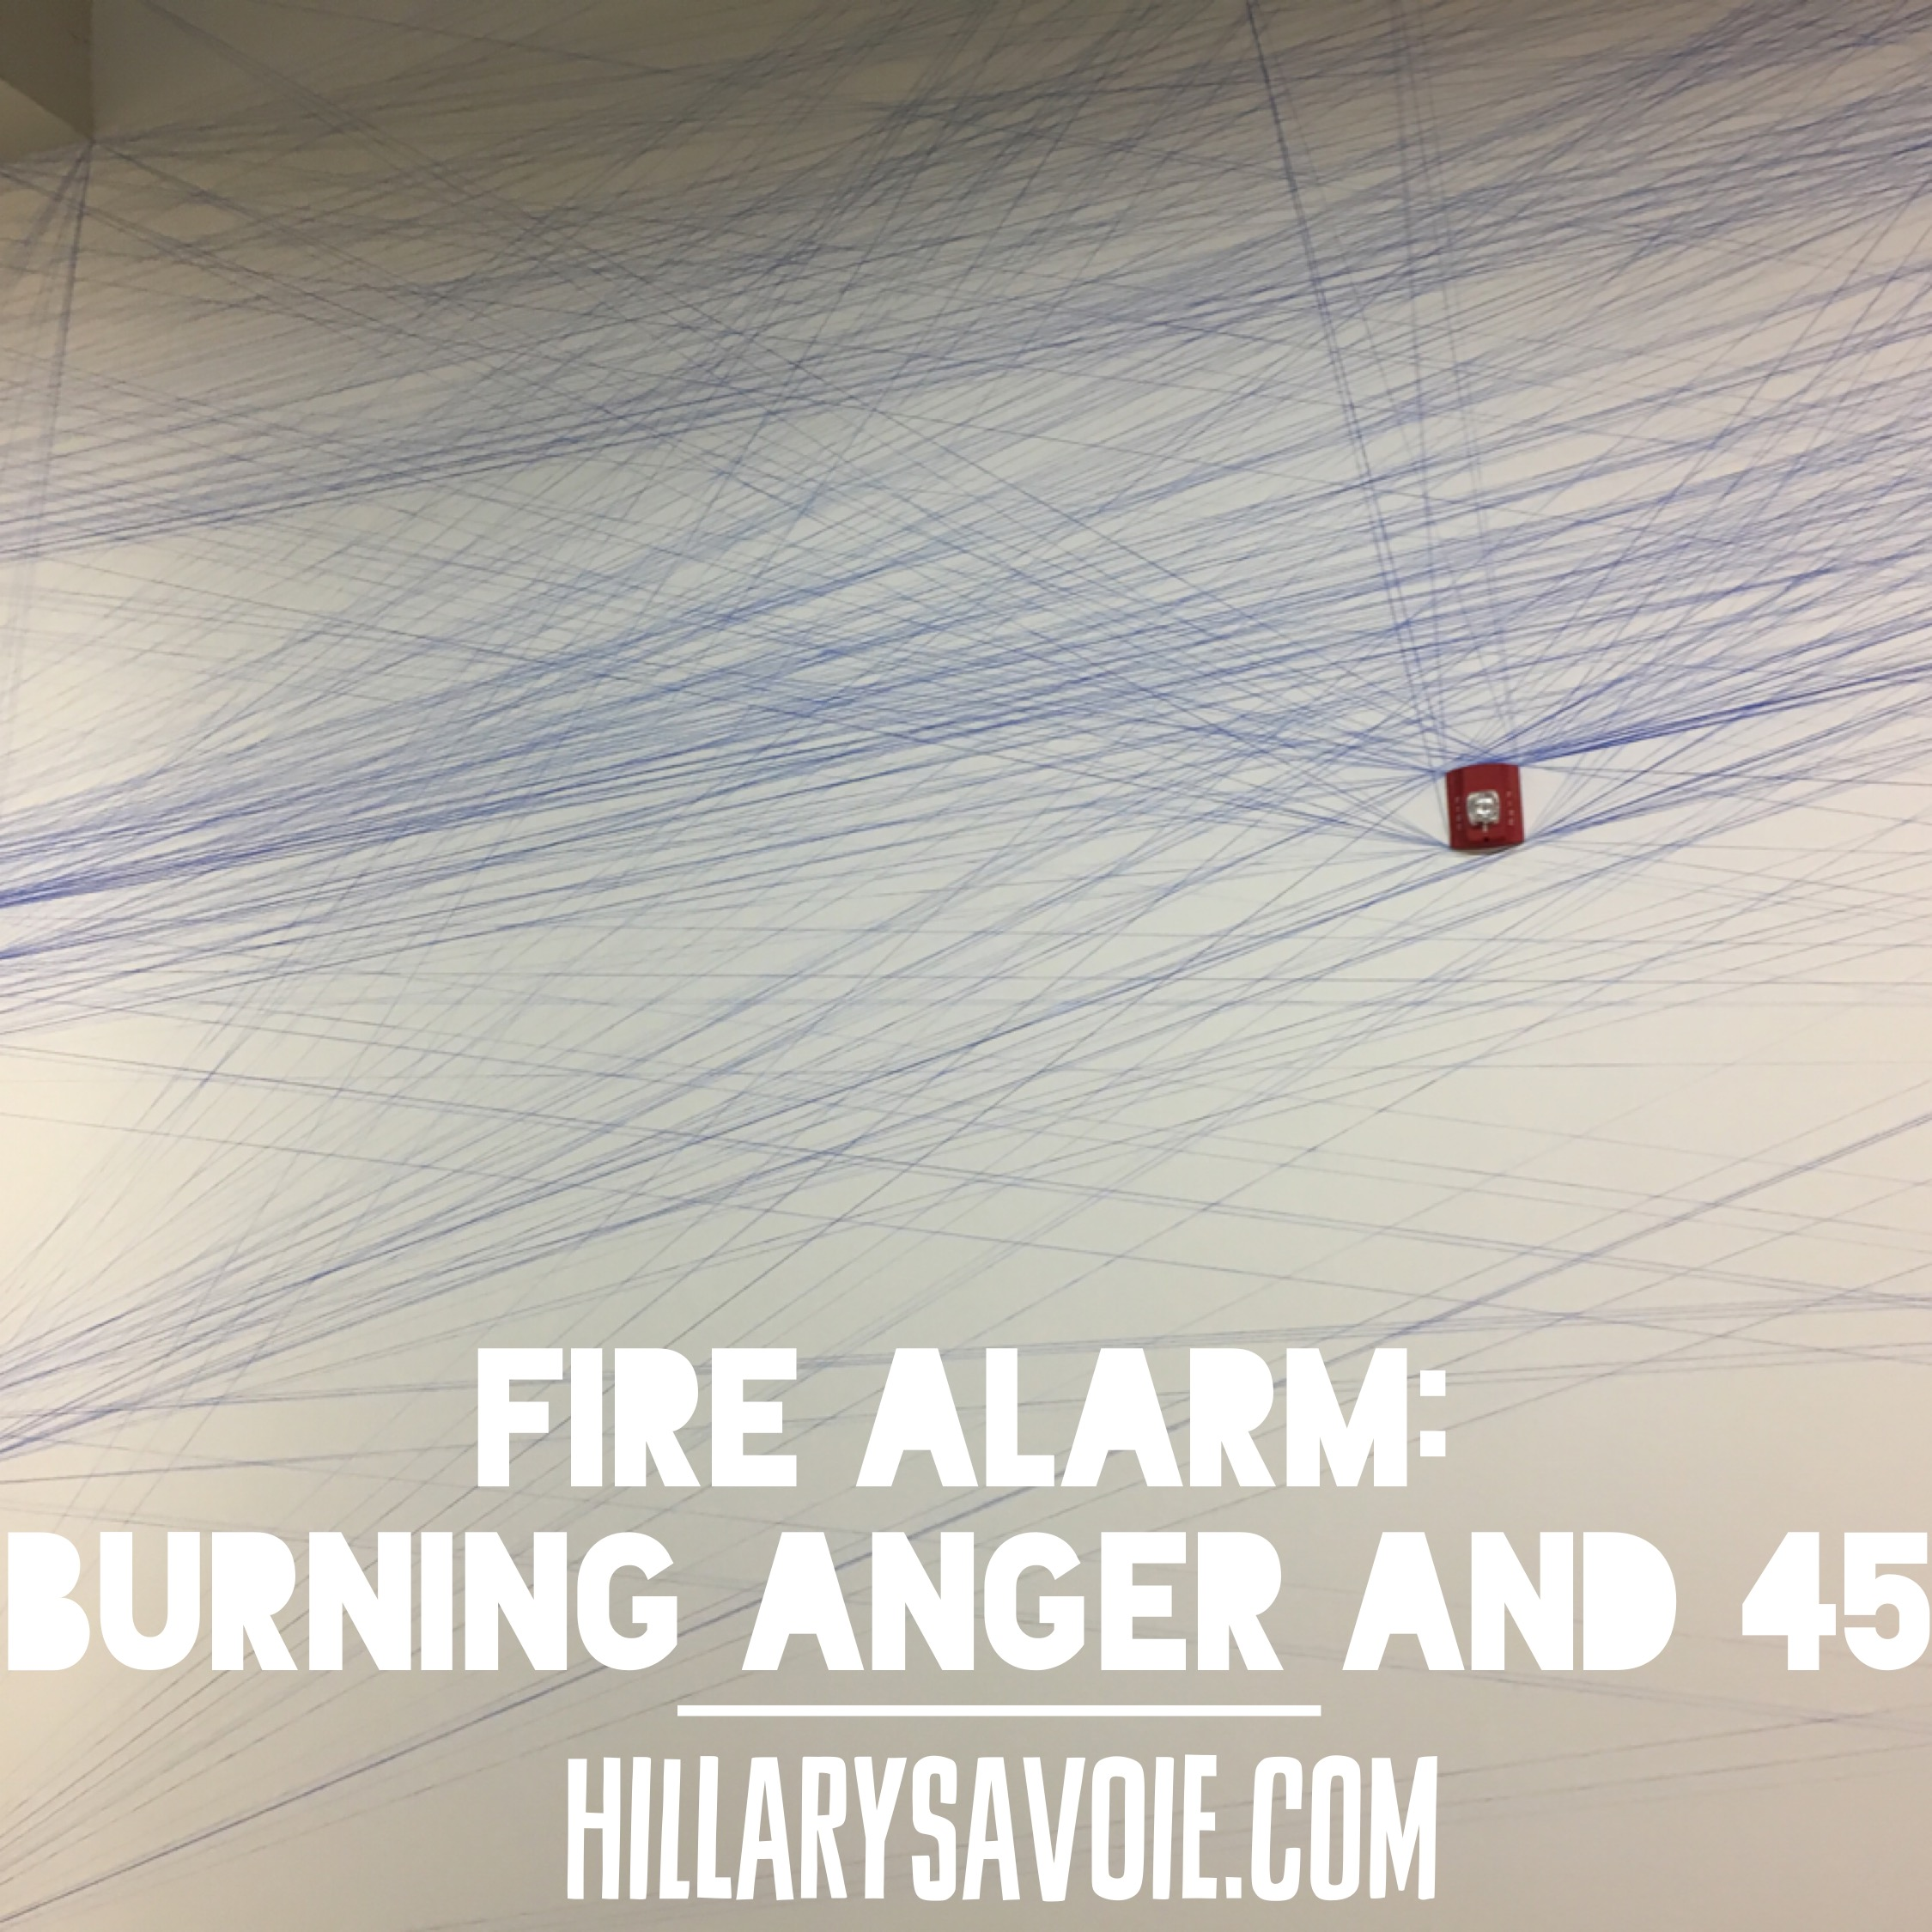 Fire Alarm: Burning Anger and 45